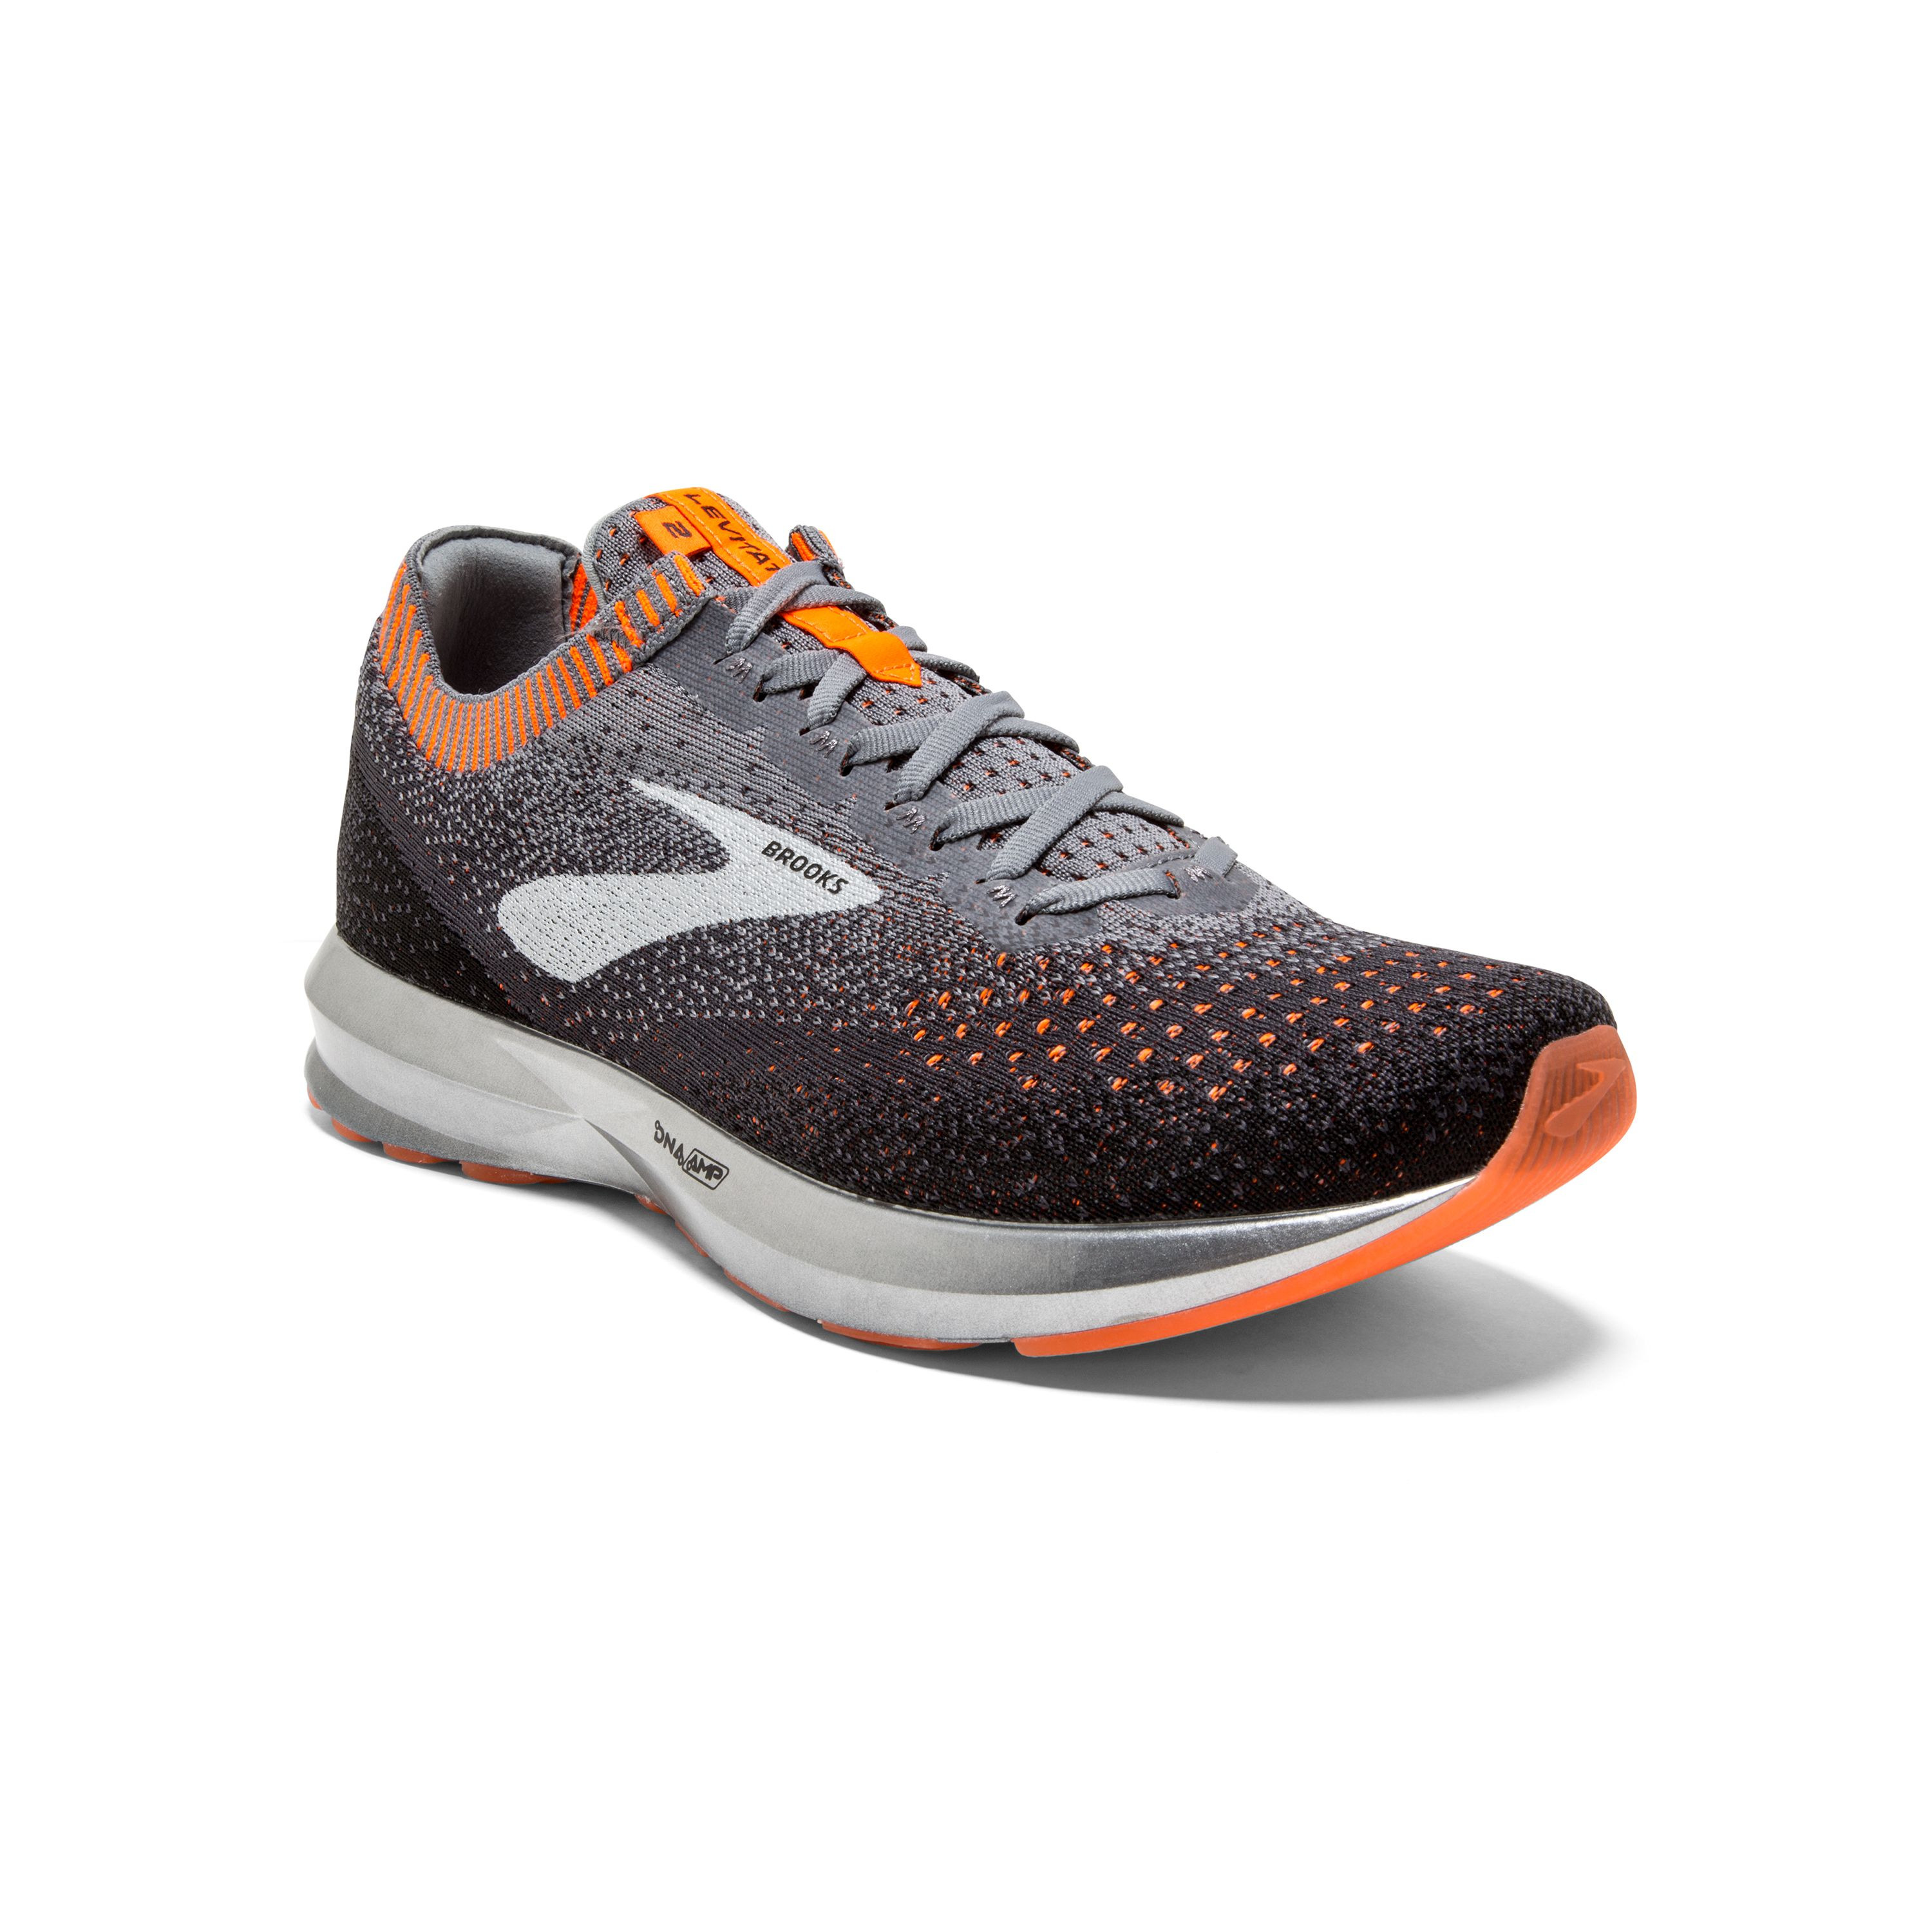 These Are the Best Brooks Running Shoes